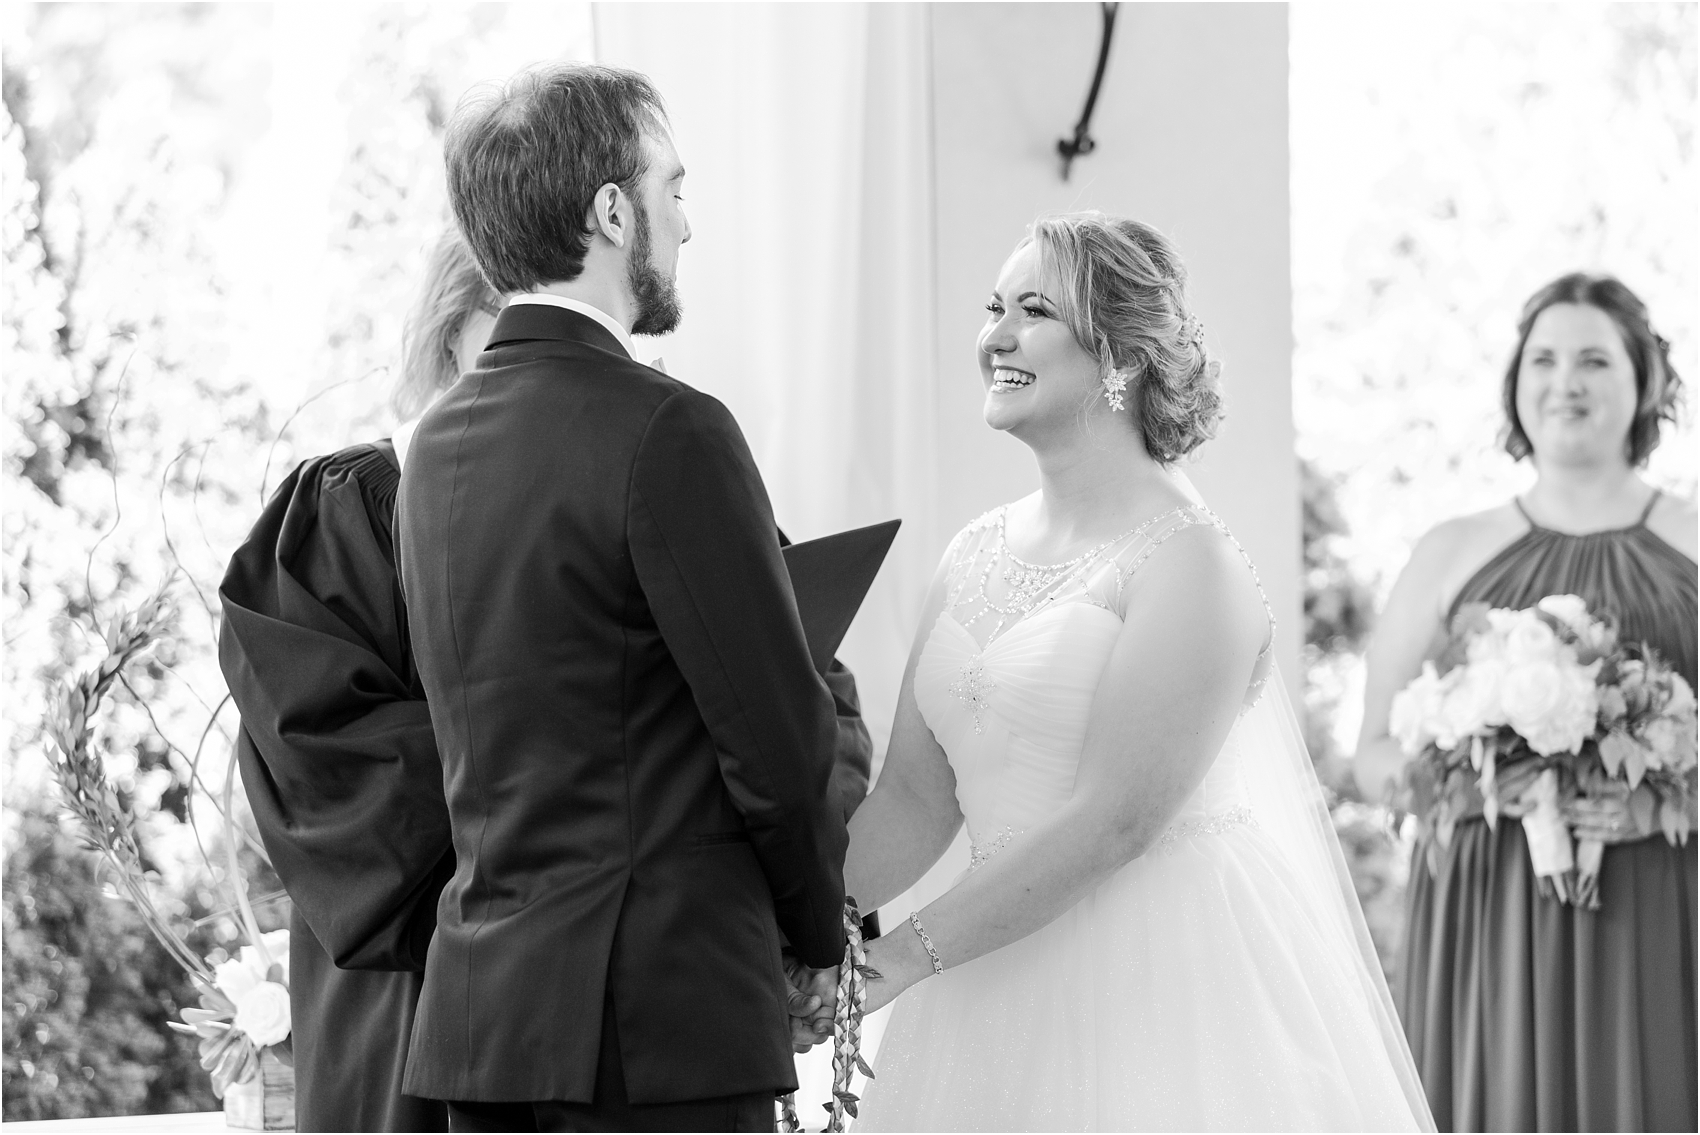 lord-of-the-rings-inspired-wedding-photos-at-crystal-gardens-in-howell-mi-by-courtney-carolyn-photography_0041.jpg